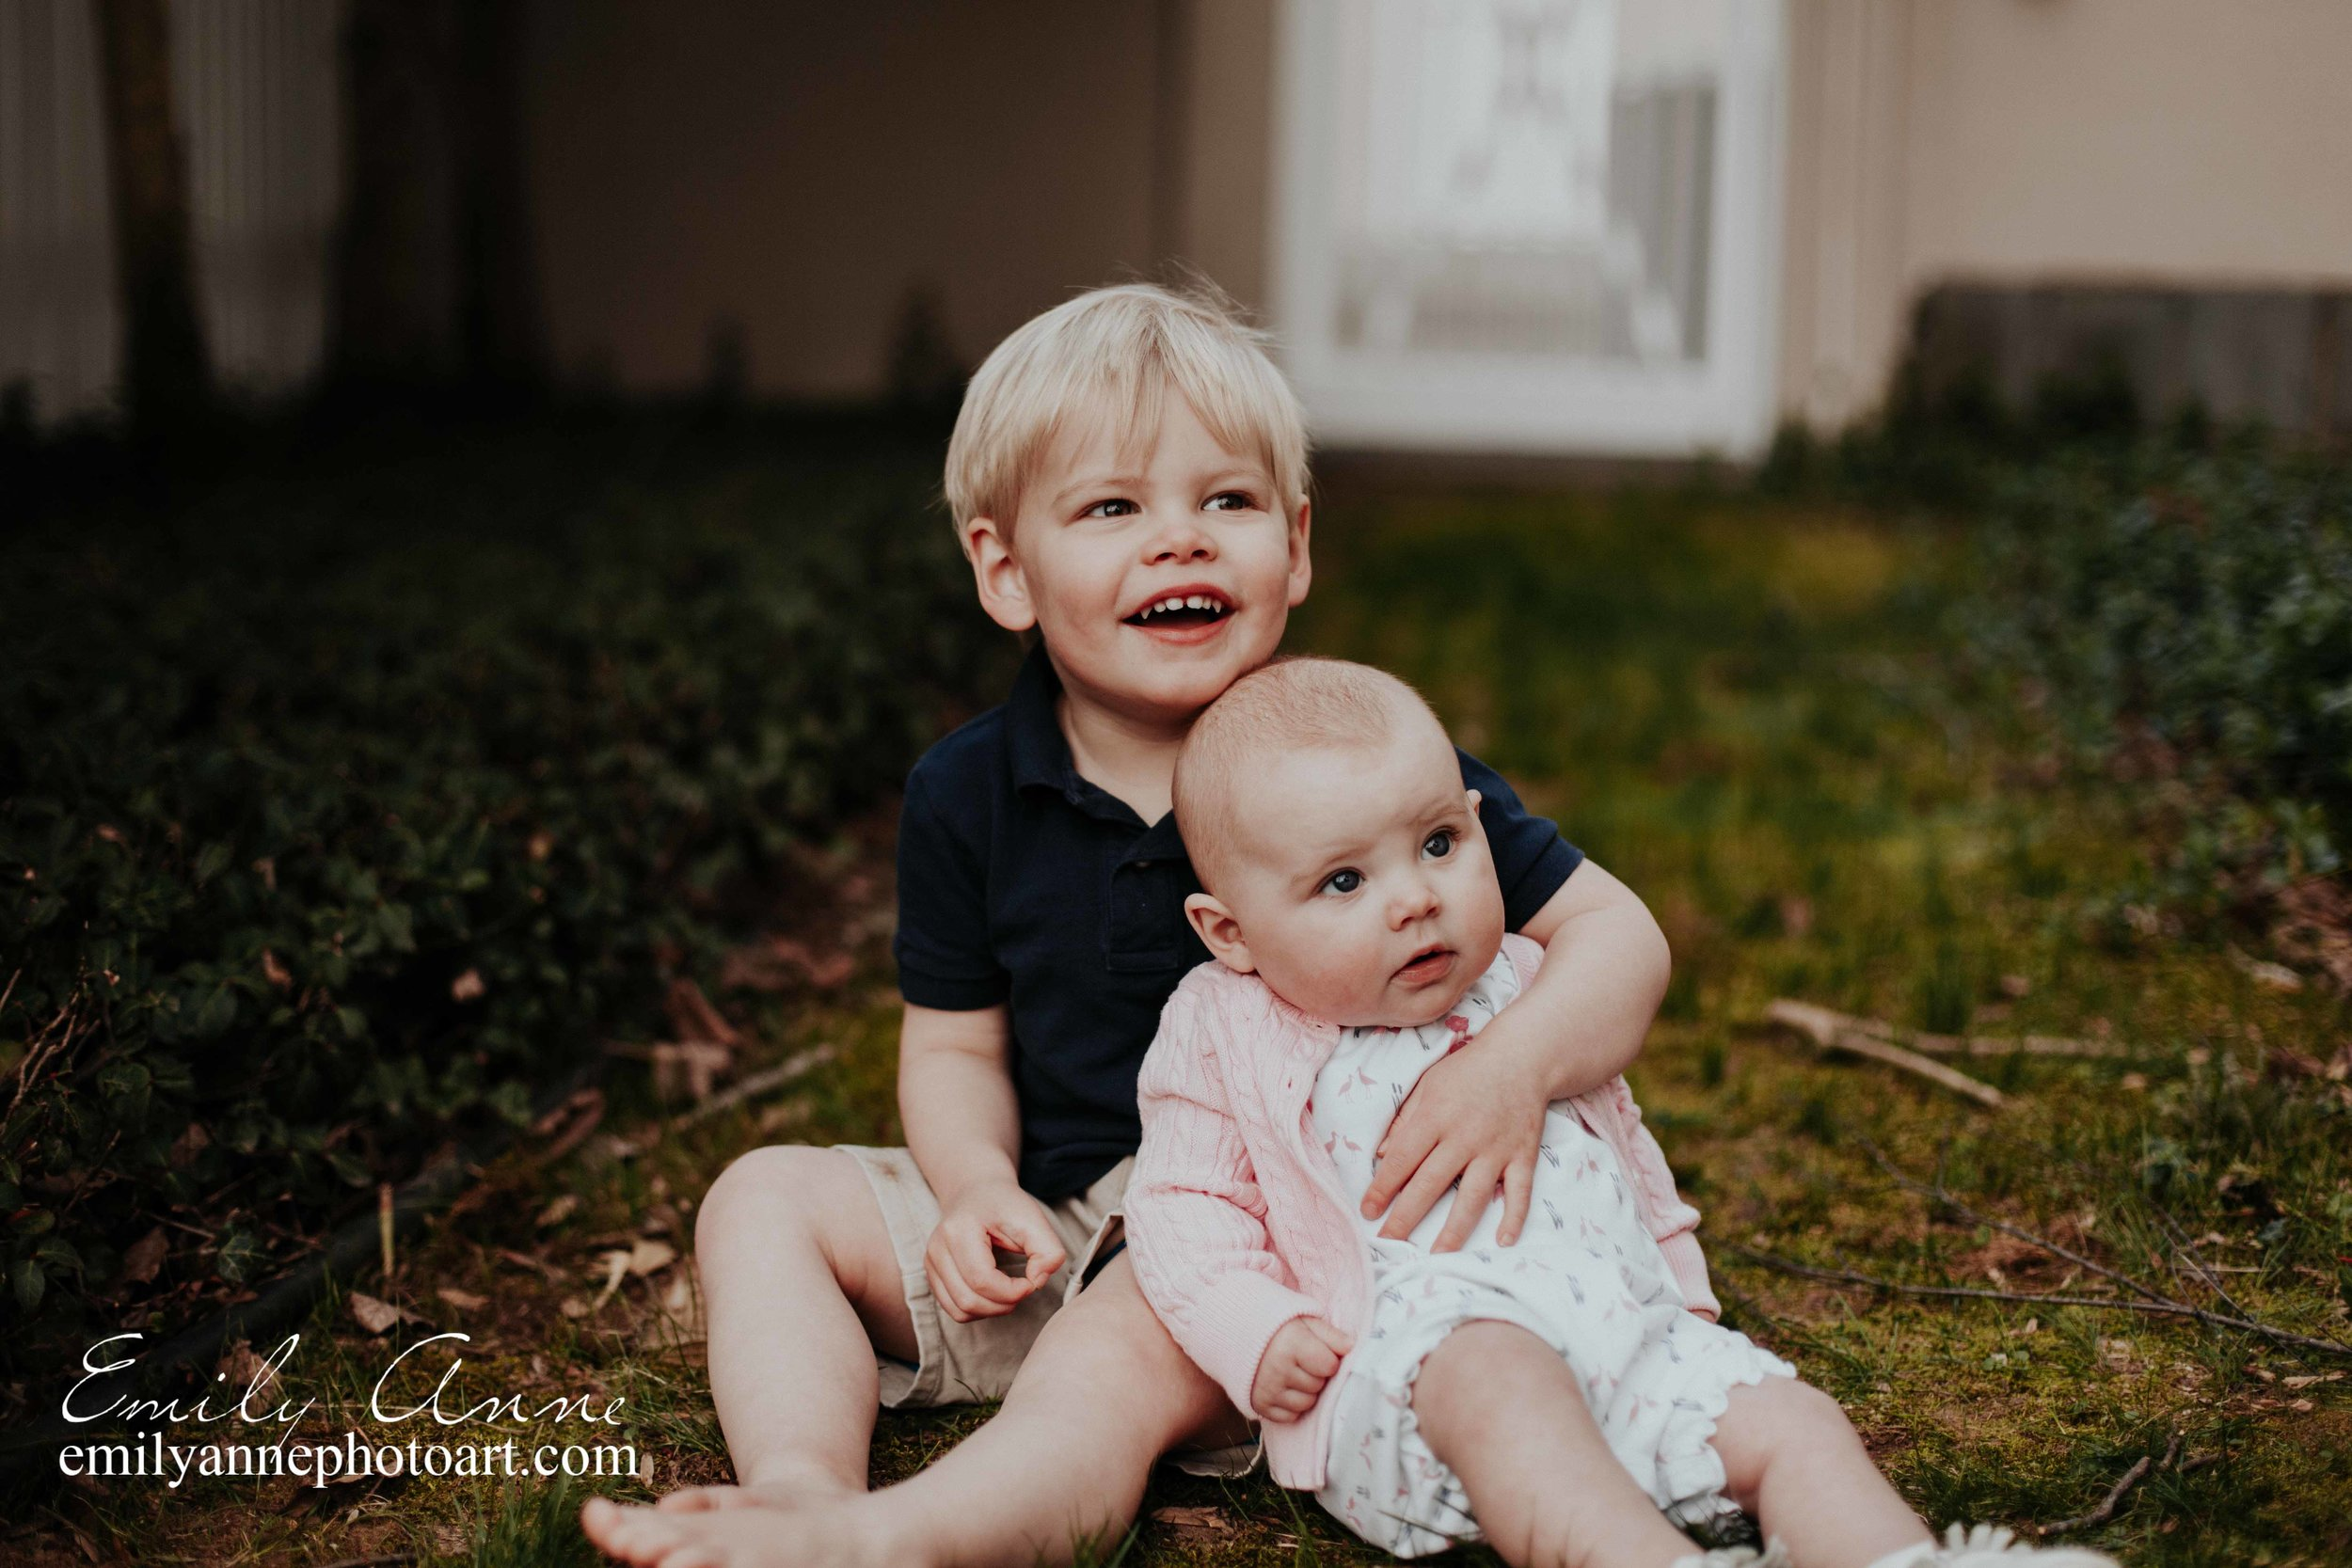 best family portrait photographer in sweden, nashville brentwood franklin tn emily anne photography